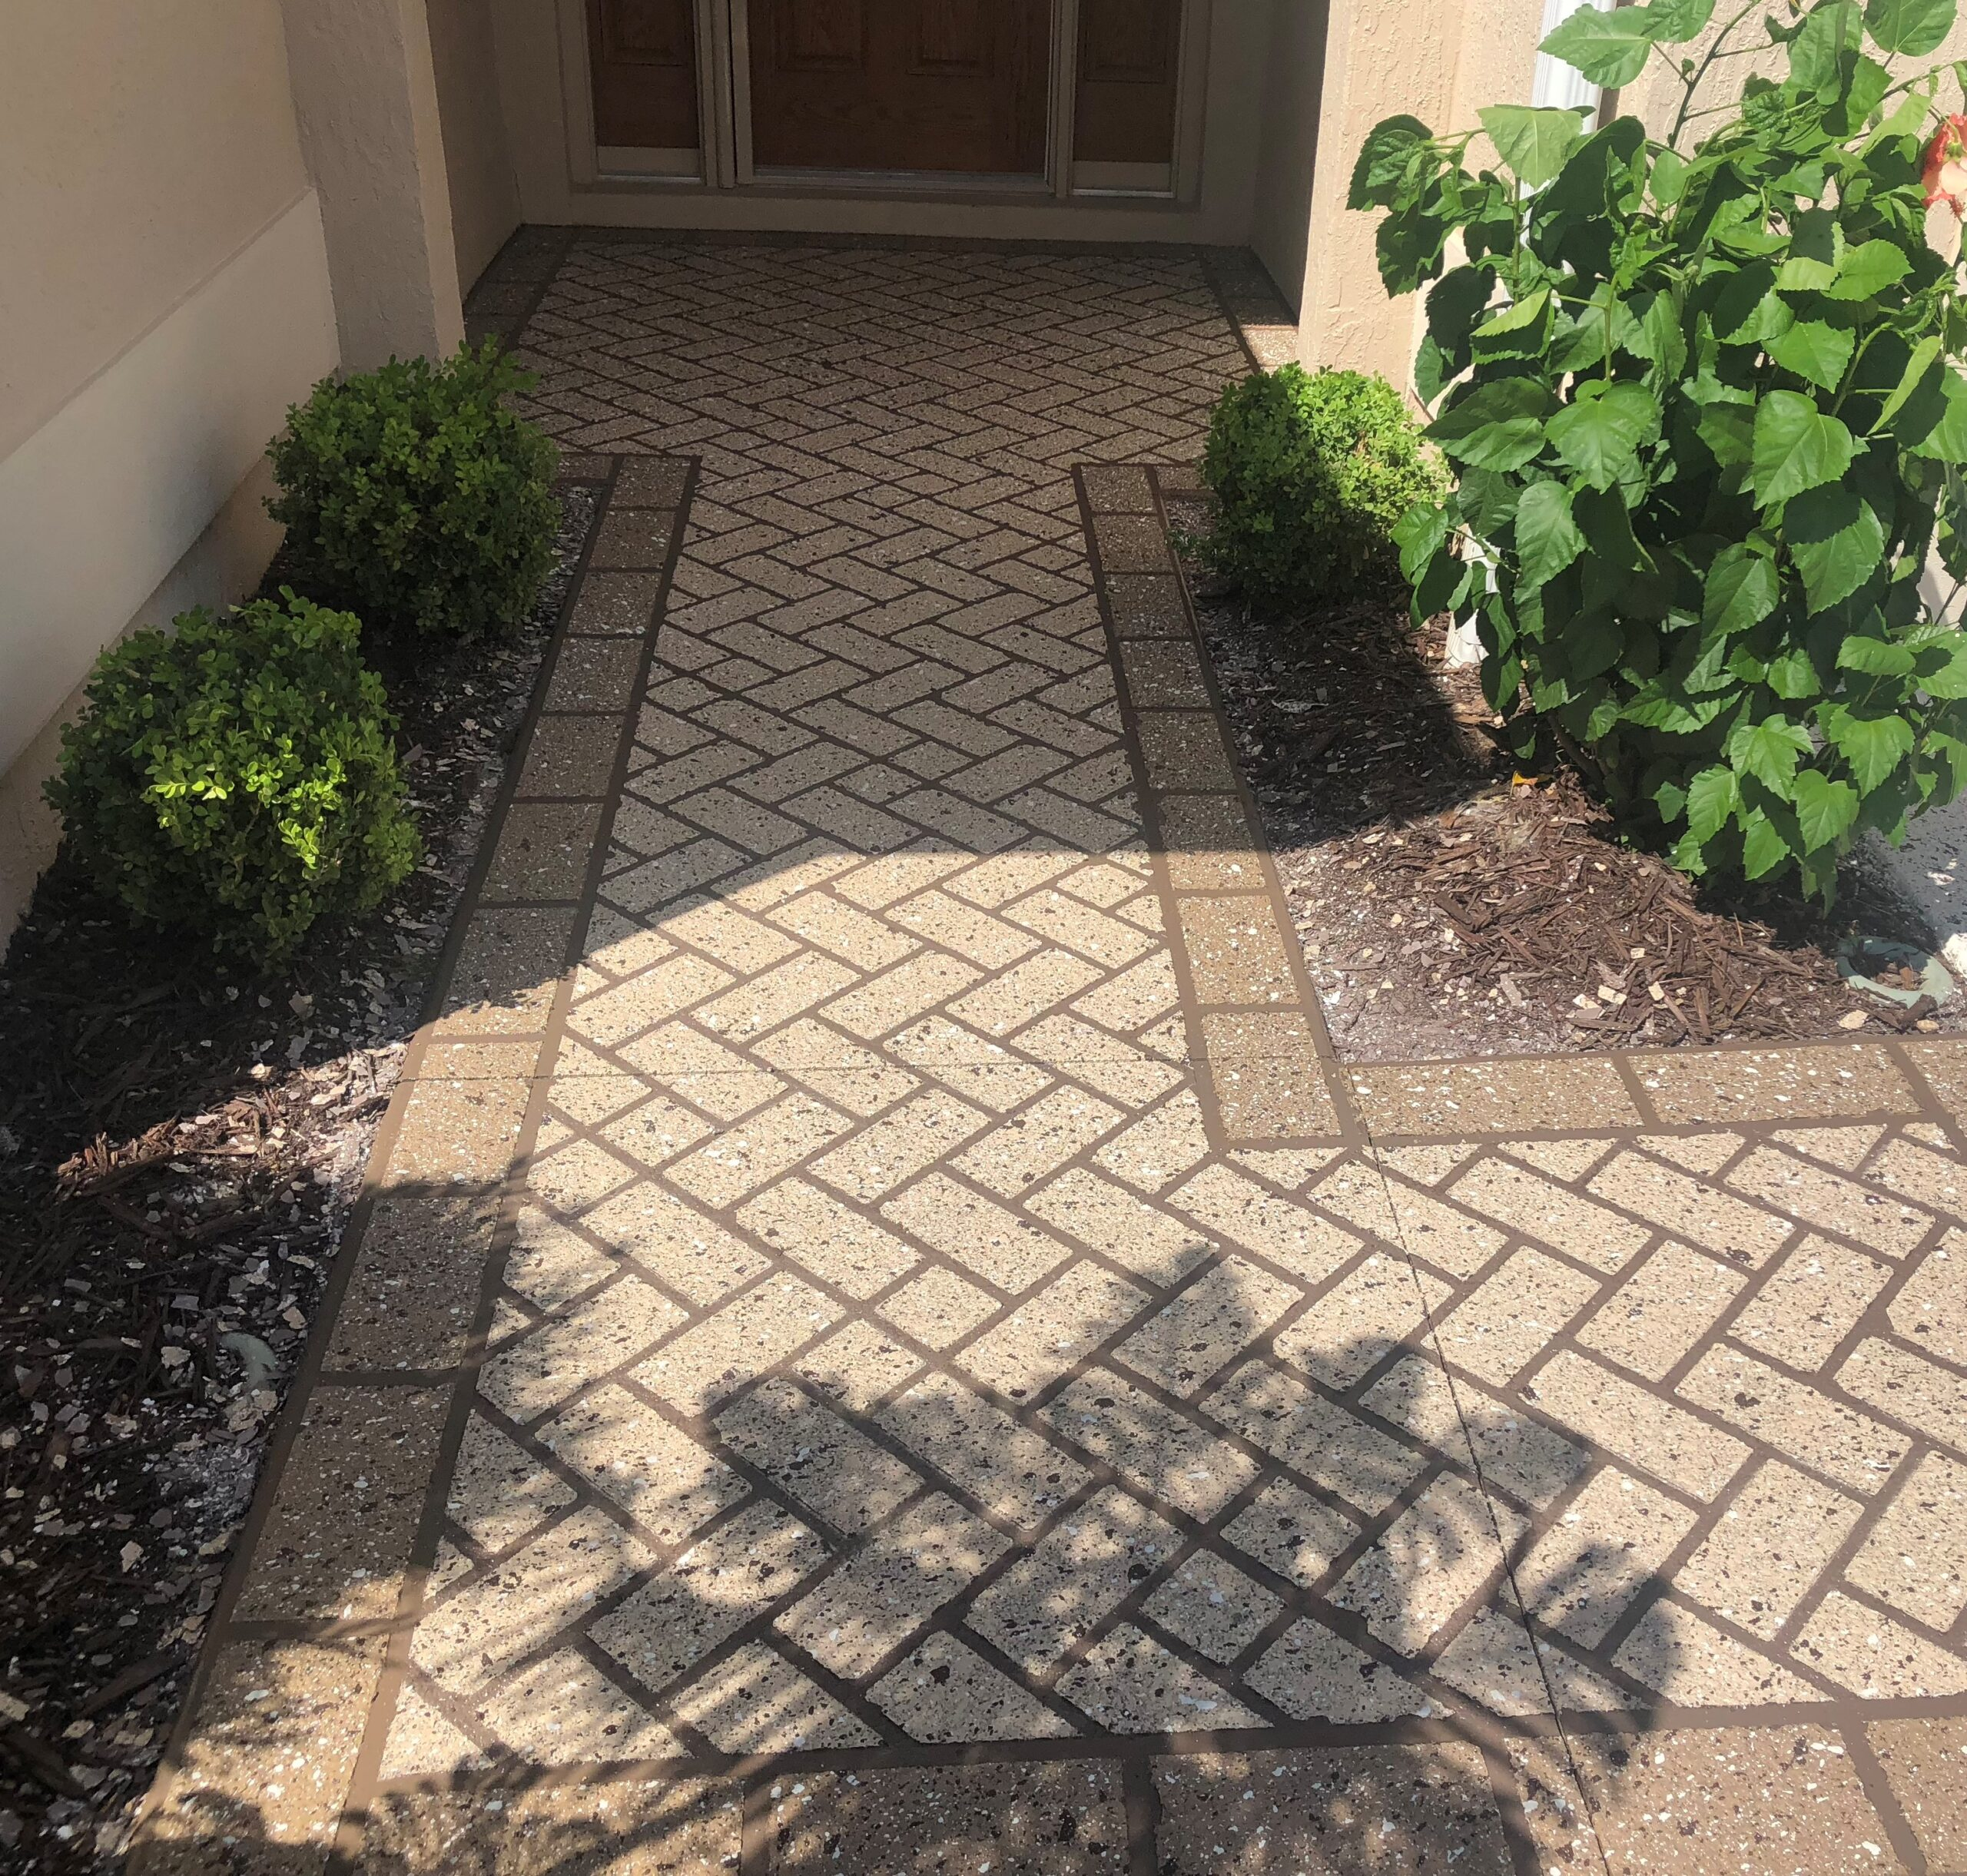 stenciled concrete walkway leading to a front door